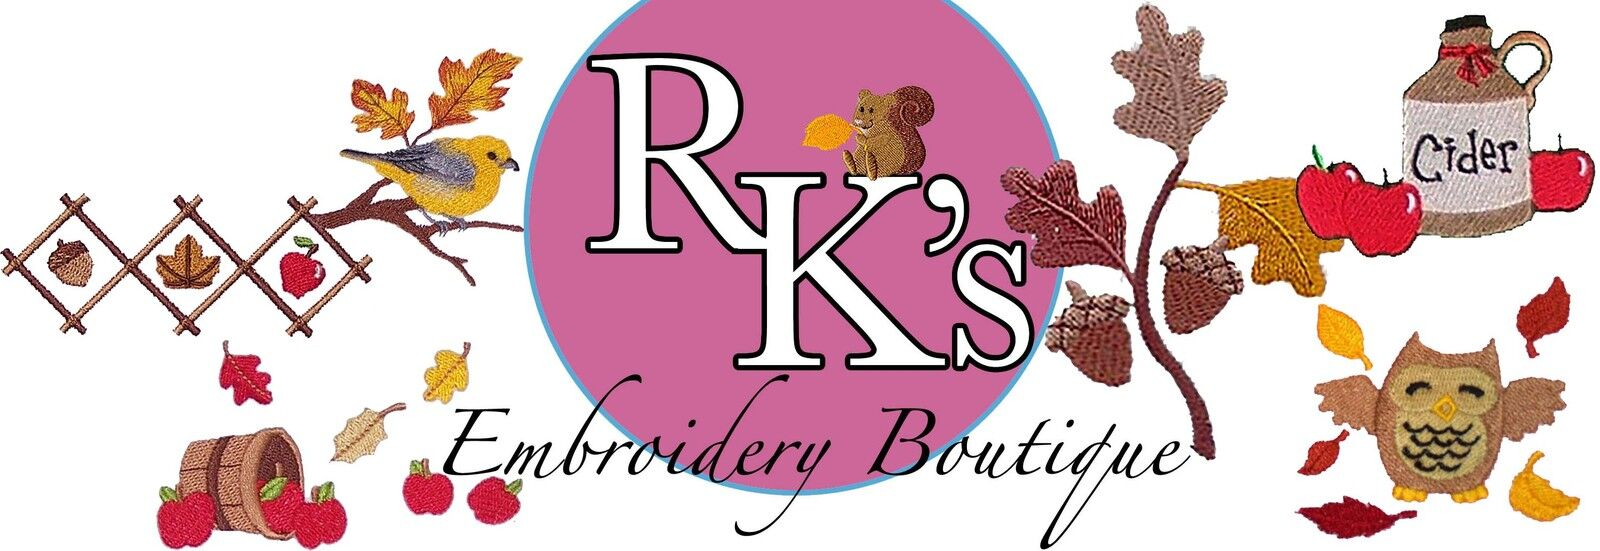 RK s Embroidery Boutique